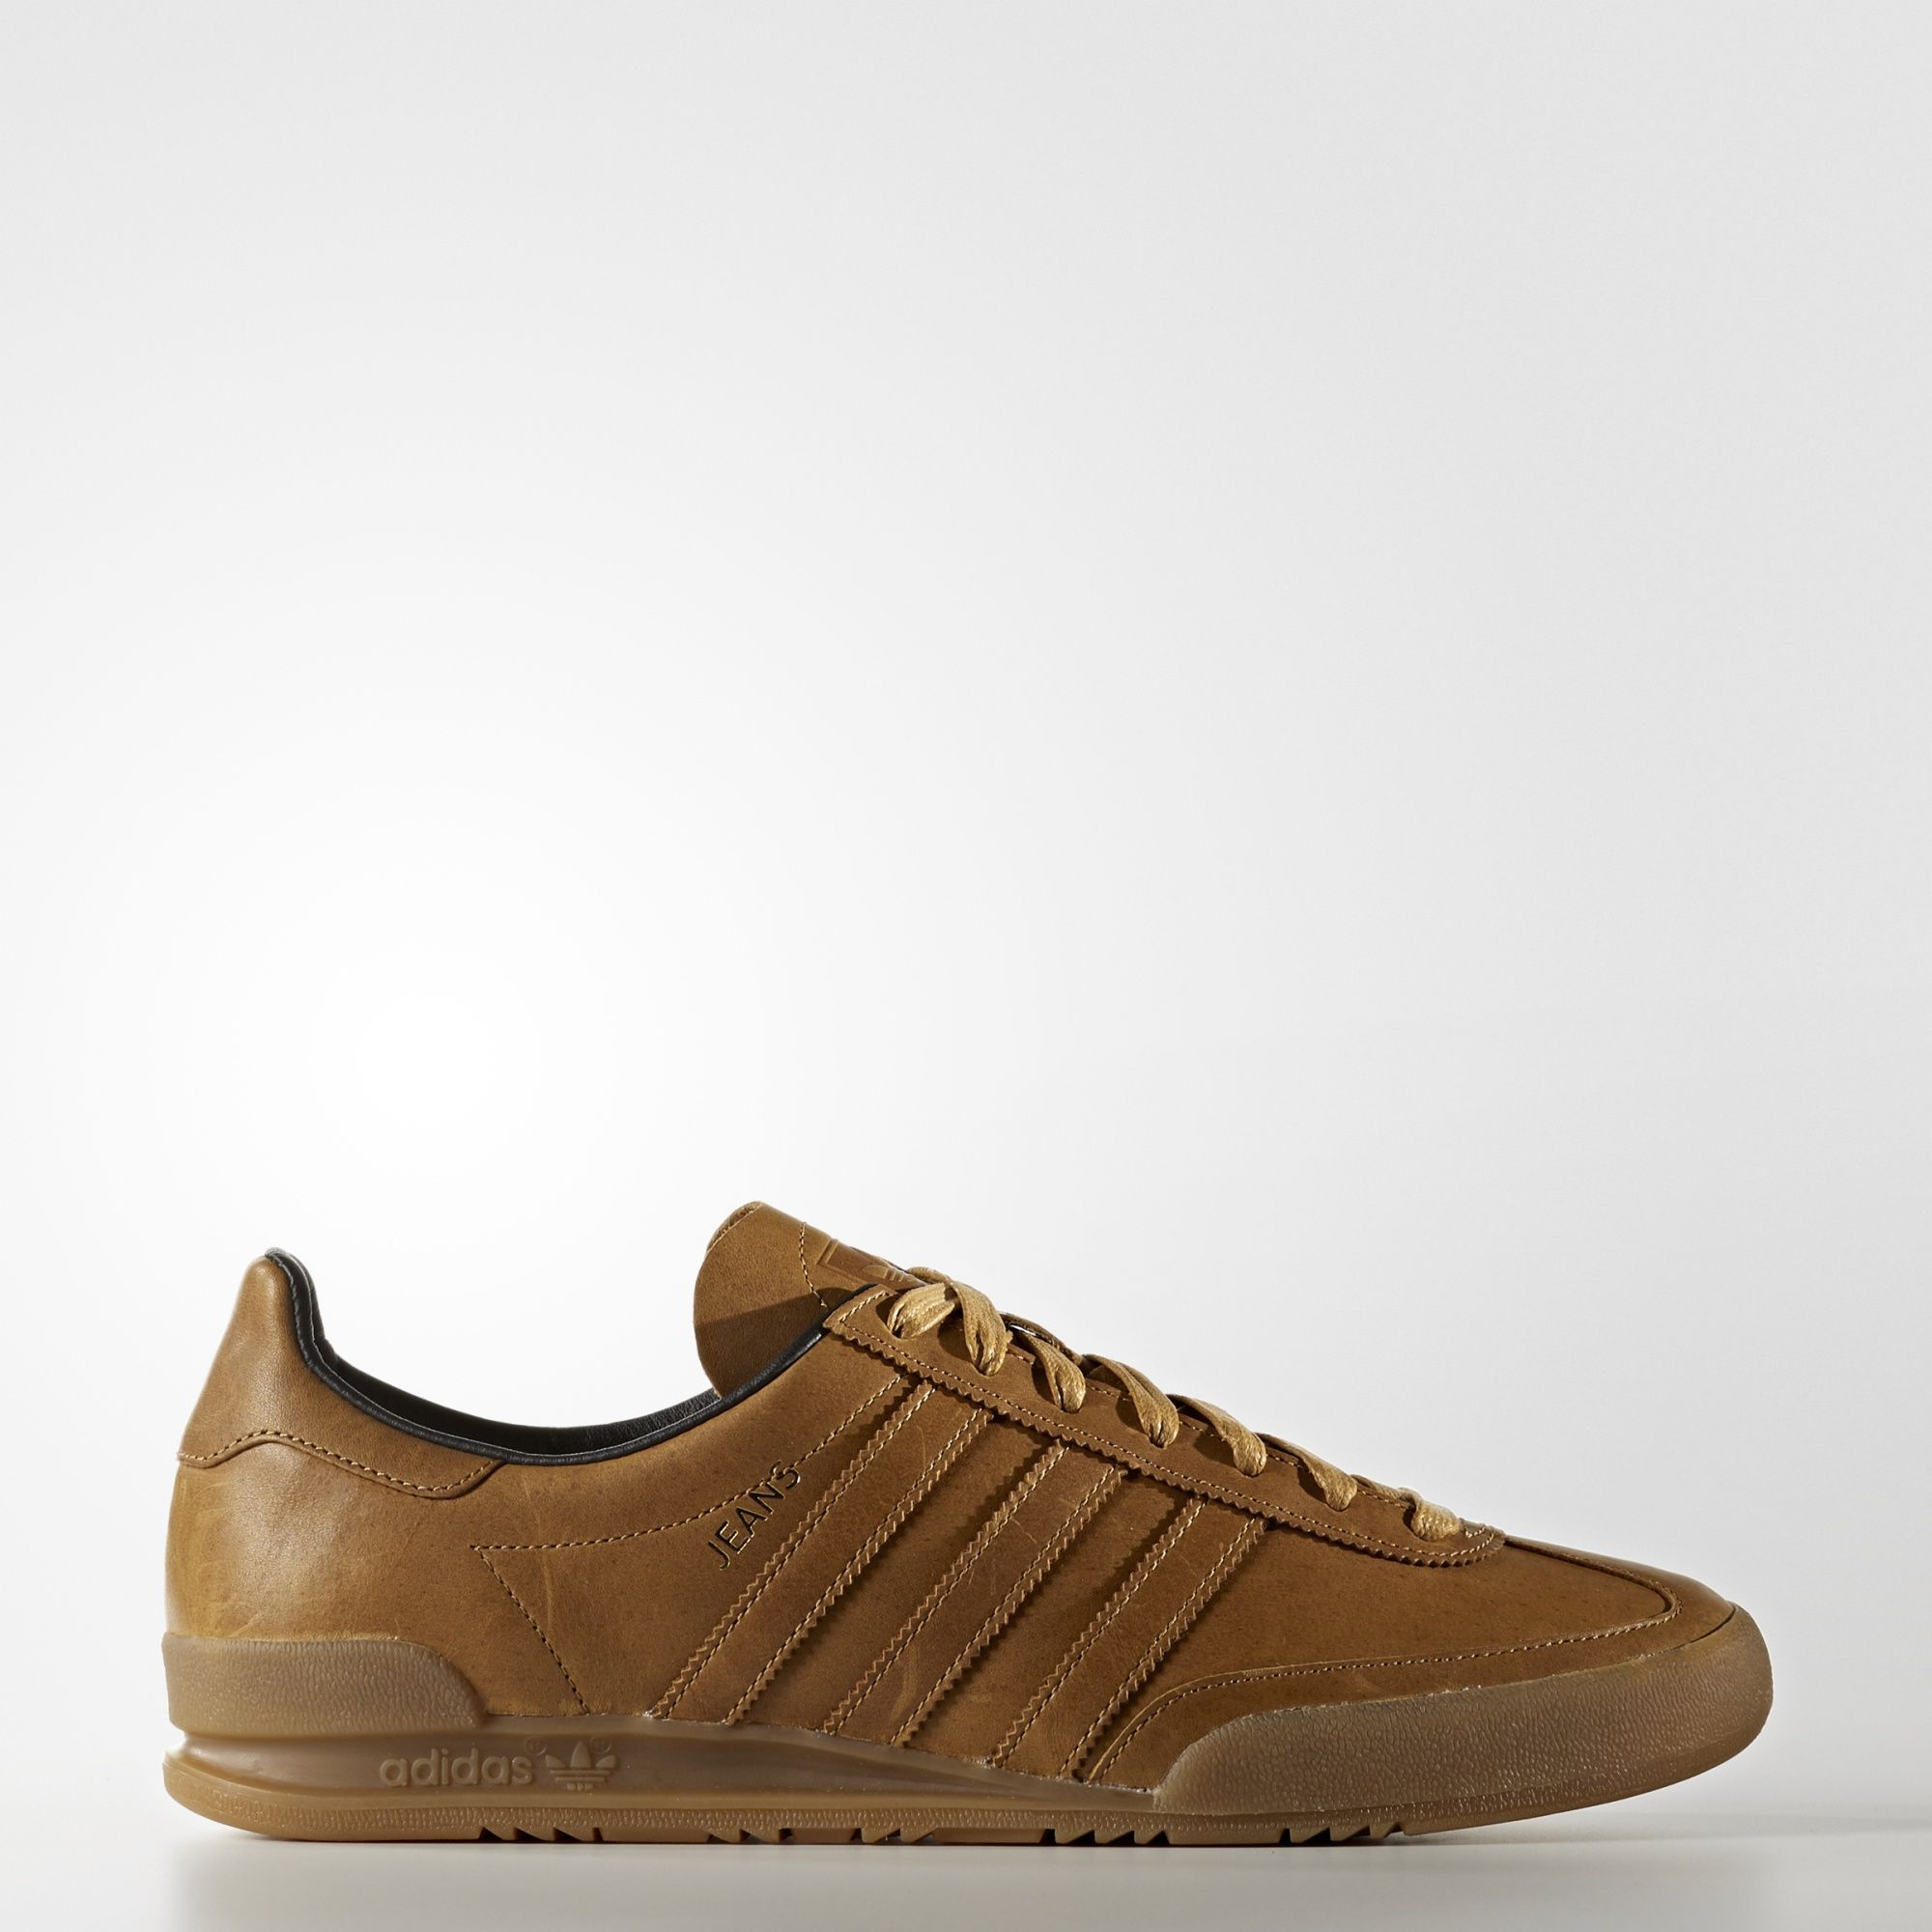 brand new 20a2e 9fee6 adidas Brown - Shoes - Jeans   Adidas Online Shop   adidas UK